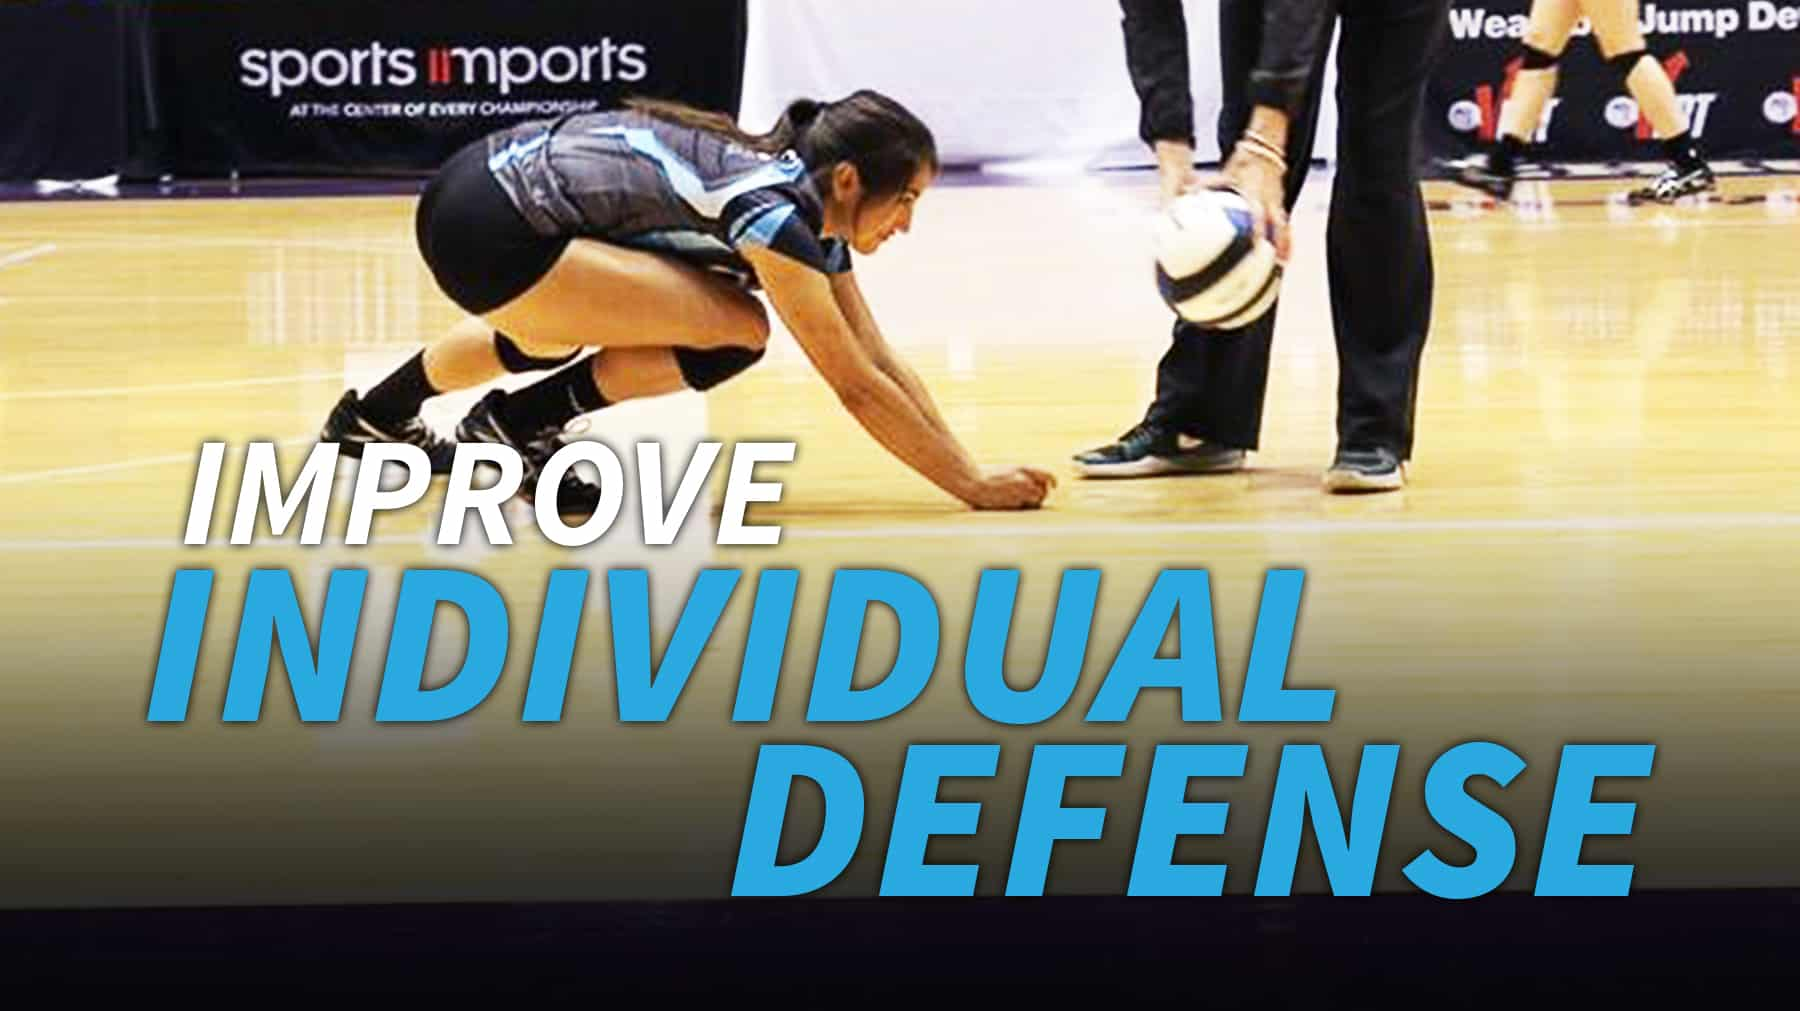 Improving Individual Defensive Skills With Cathy George